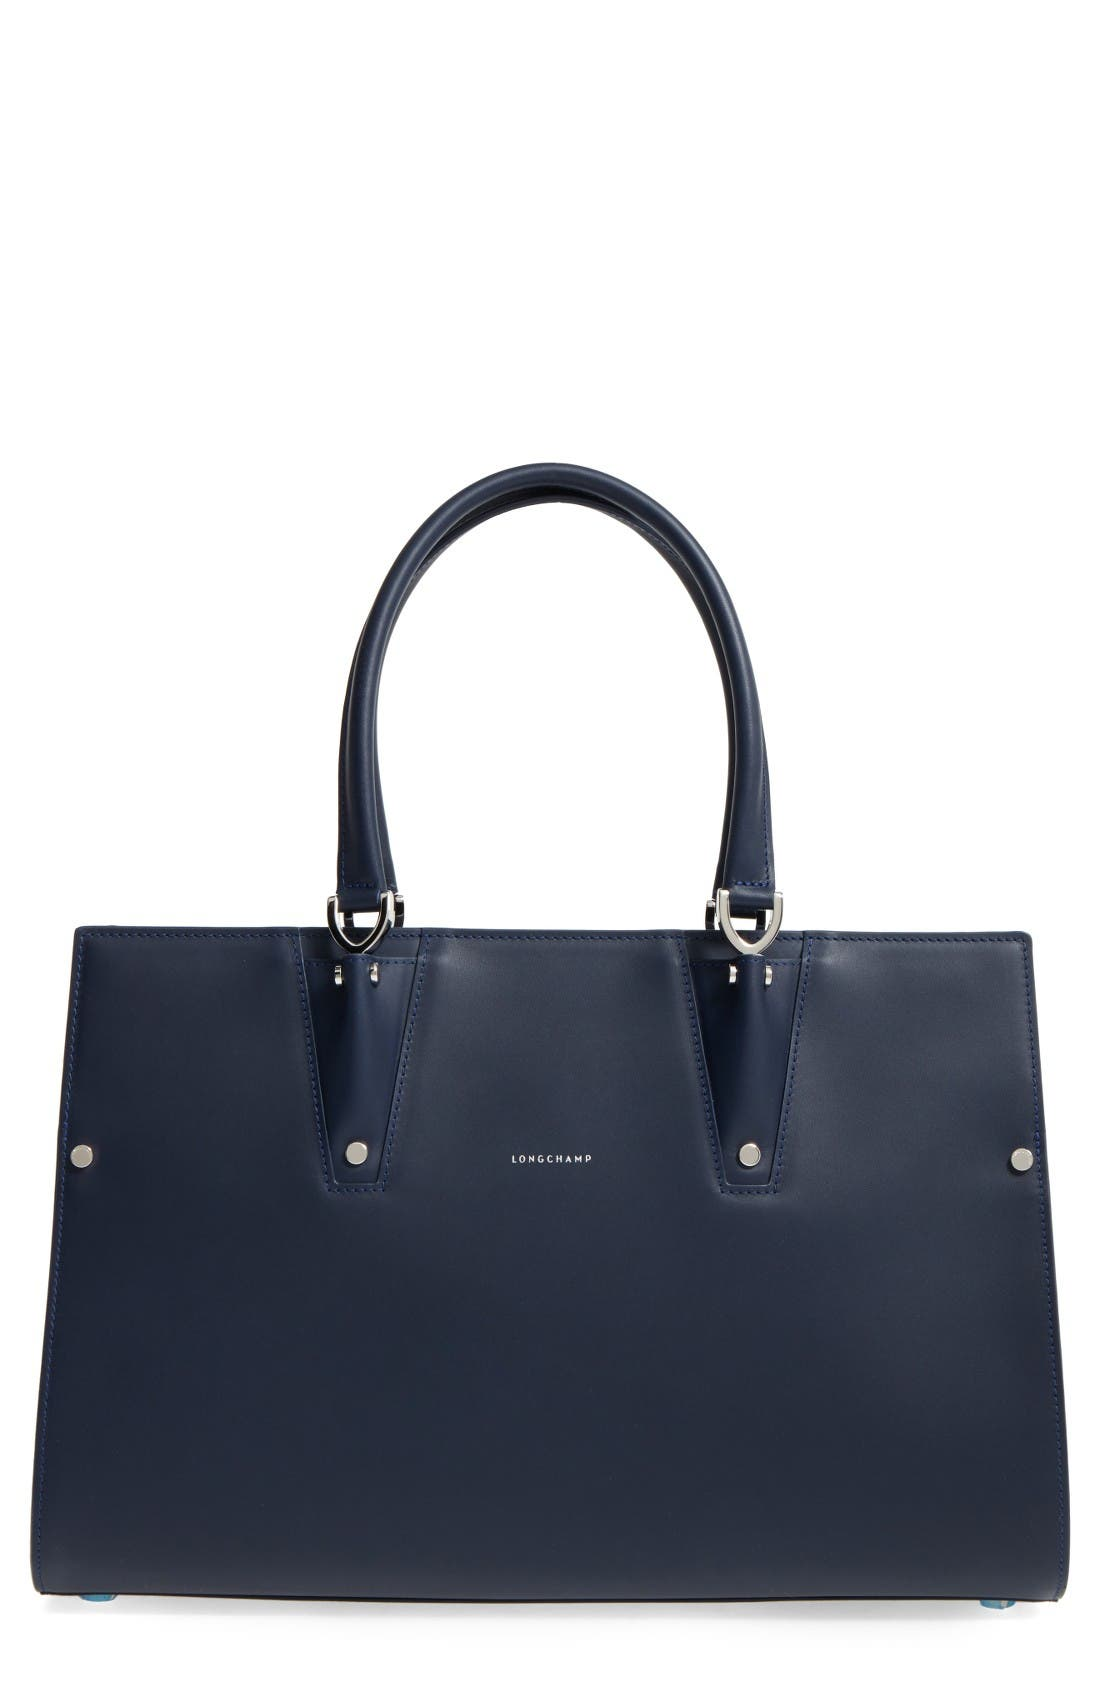 LONGCHAMP Large Paris Premier Tote